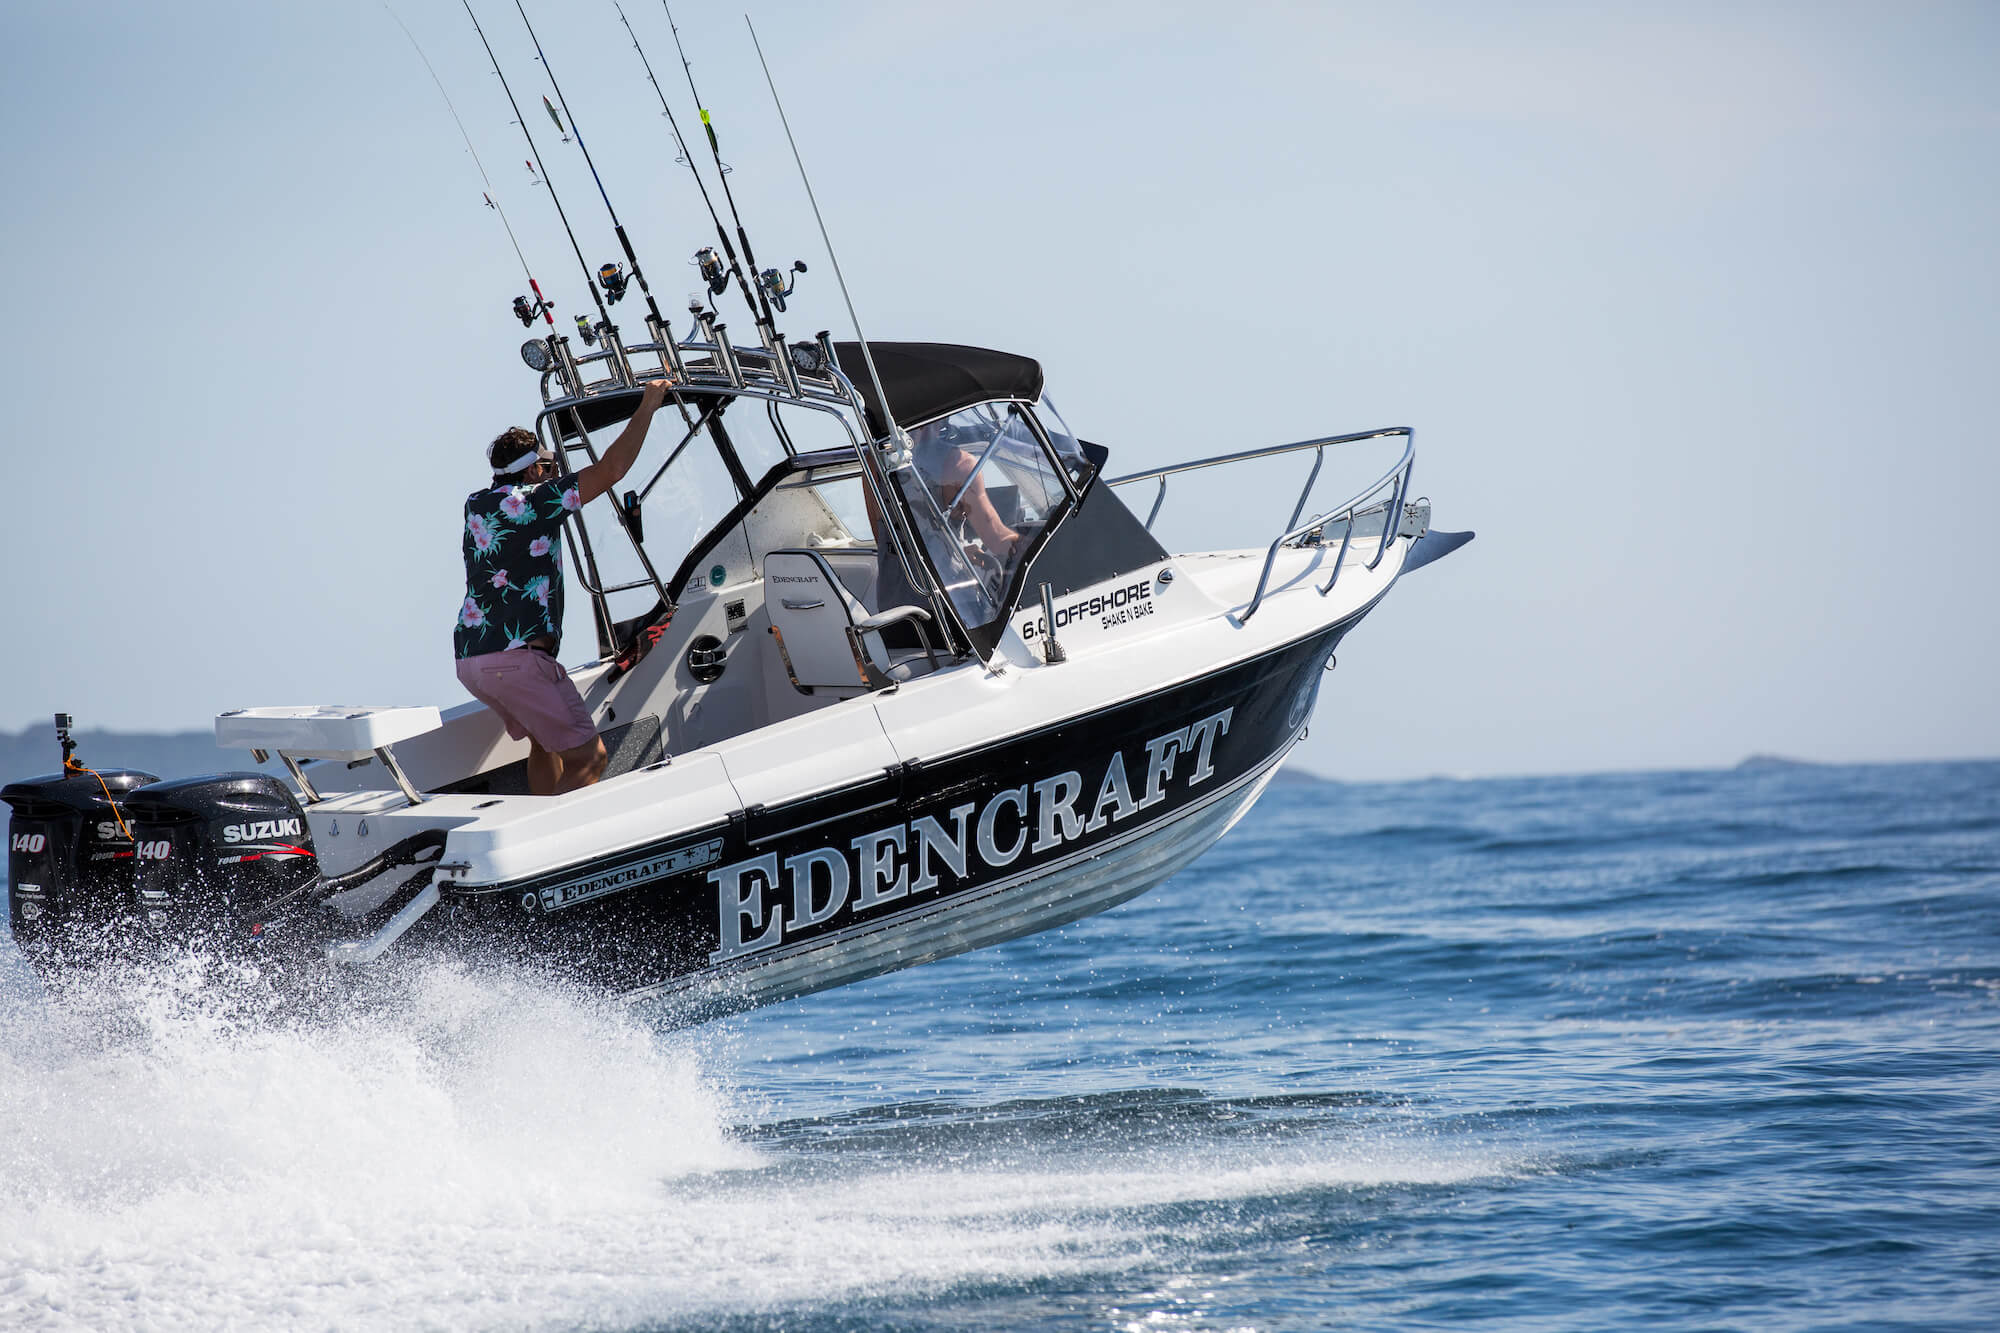 Man hangs on to rocket launcher as Edencraft 6.0m Offshore boat launches from the water